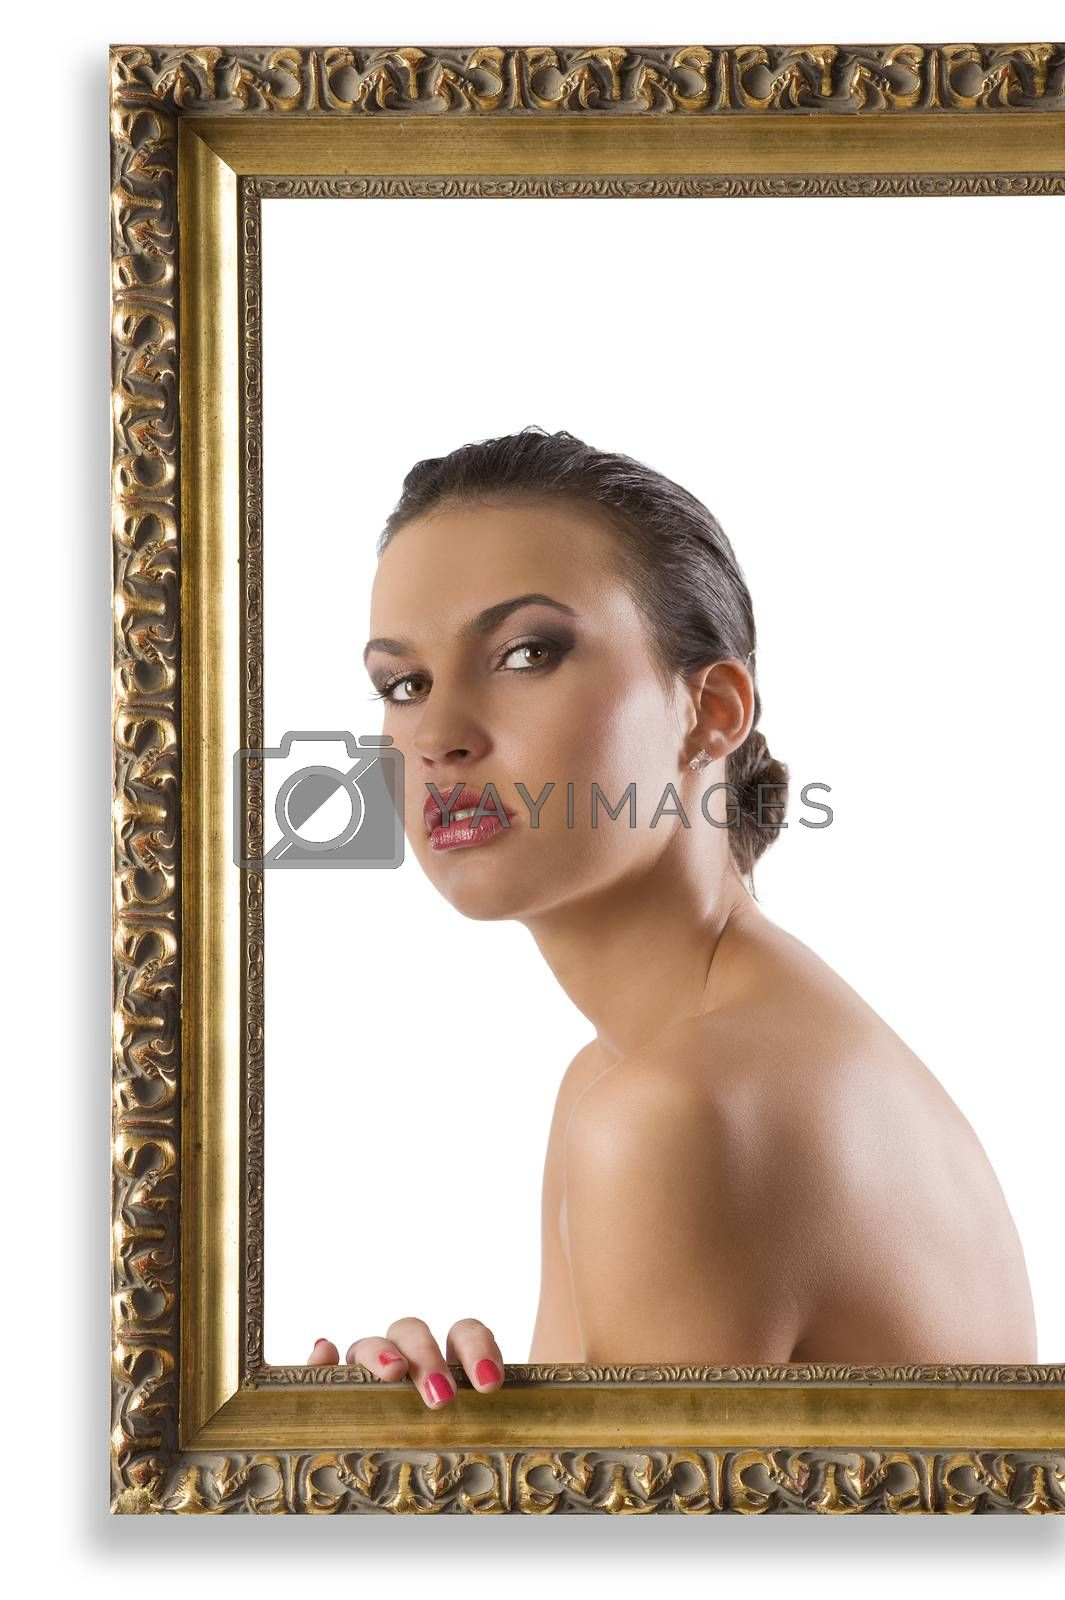 Royalty free image of girl with nude shoulder by fotoCD